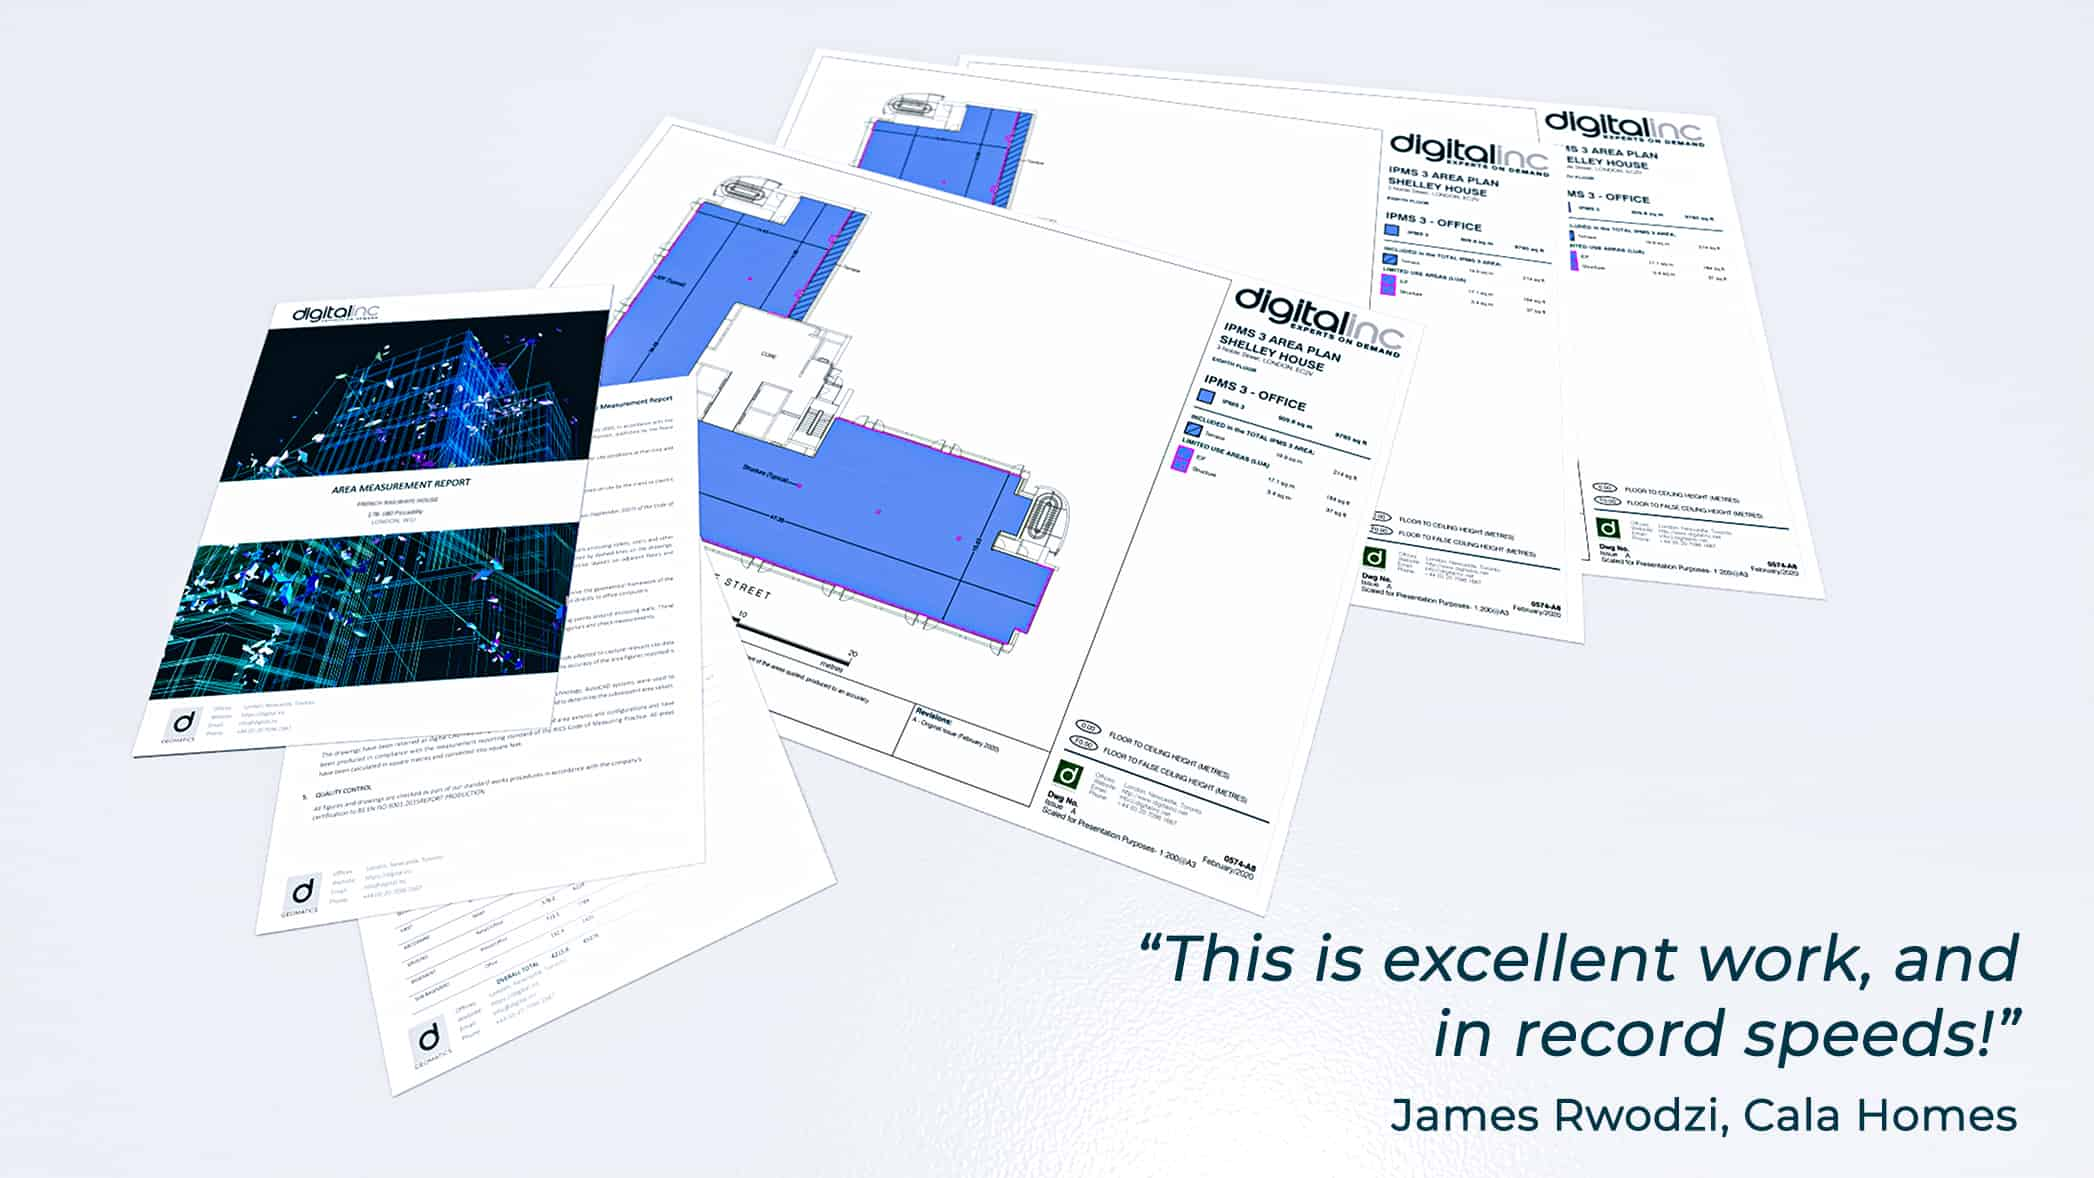 """Serval area plans and testimonial: """"This is excellent work, and in record speeds!"""" James Rwodzi, Cala Homes"""